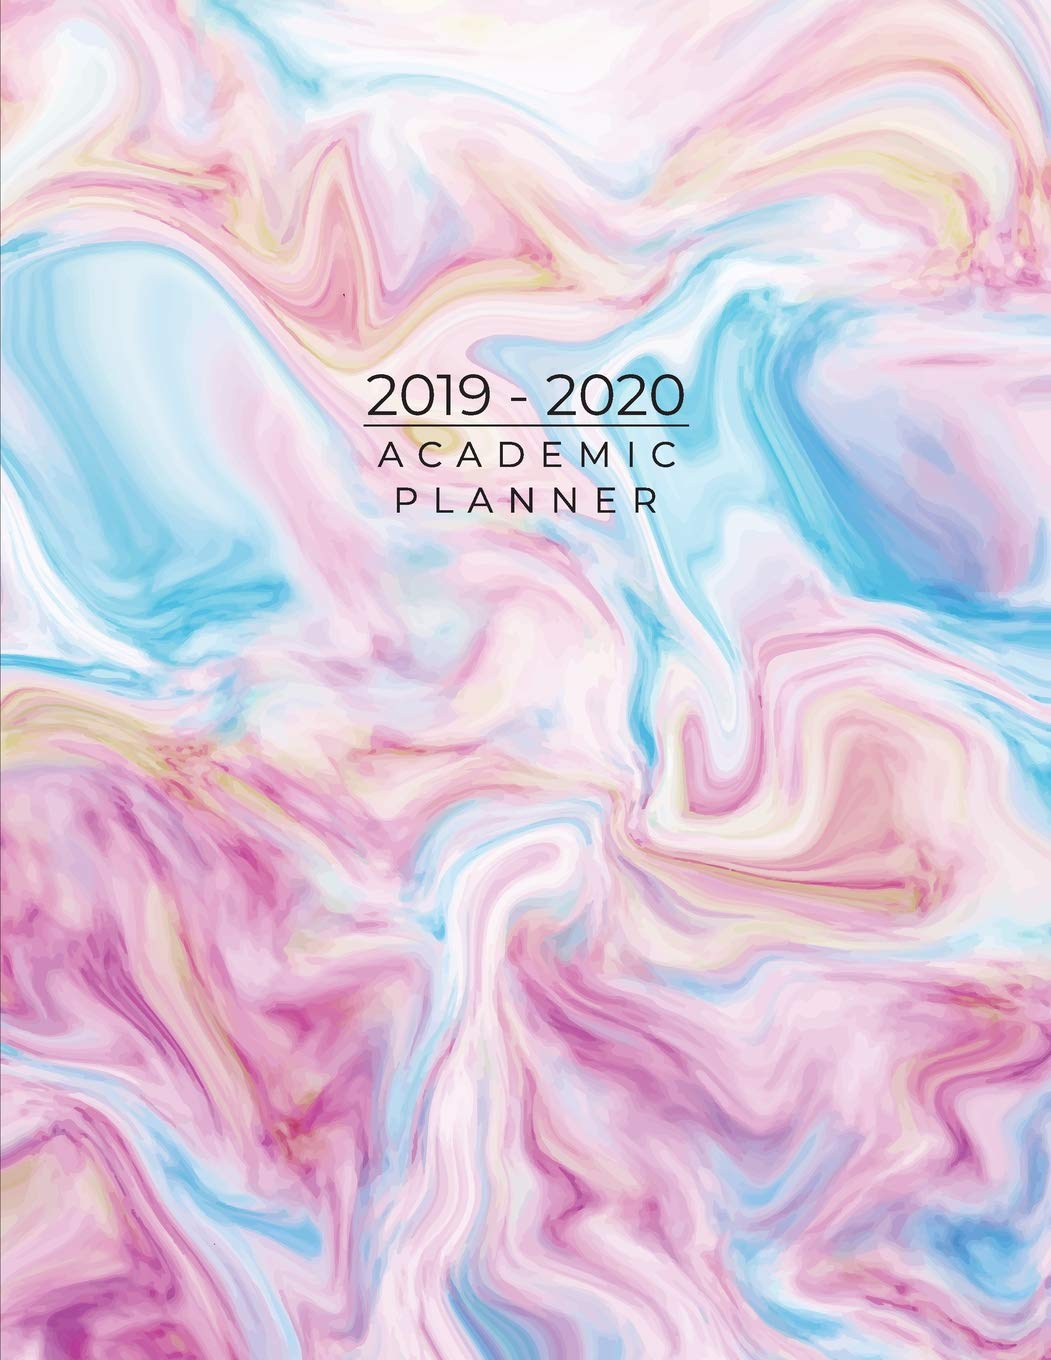 2019-2020 Academic Planner: Weekly Planner For Schedule ...